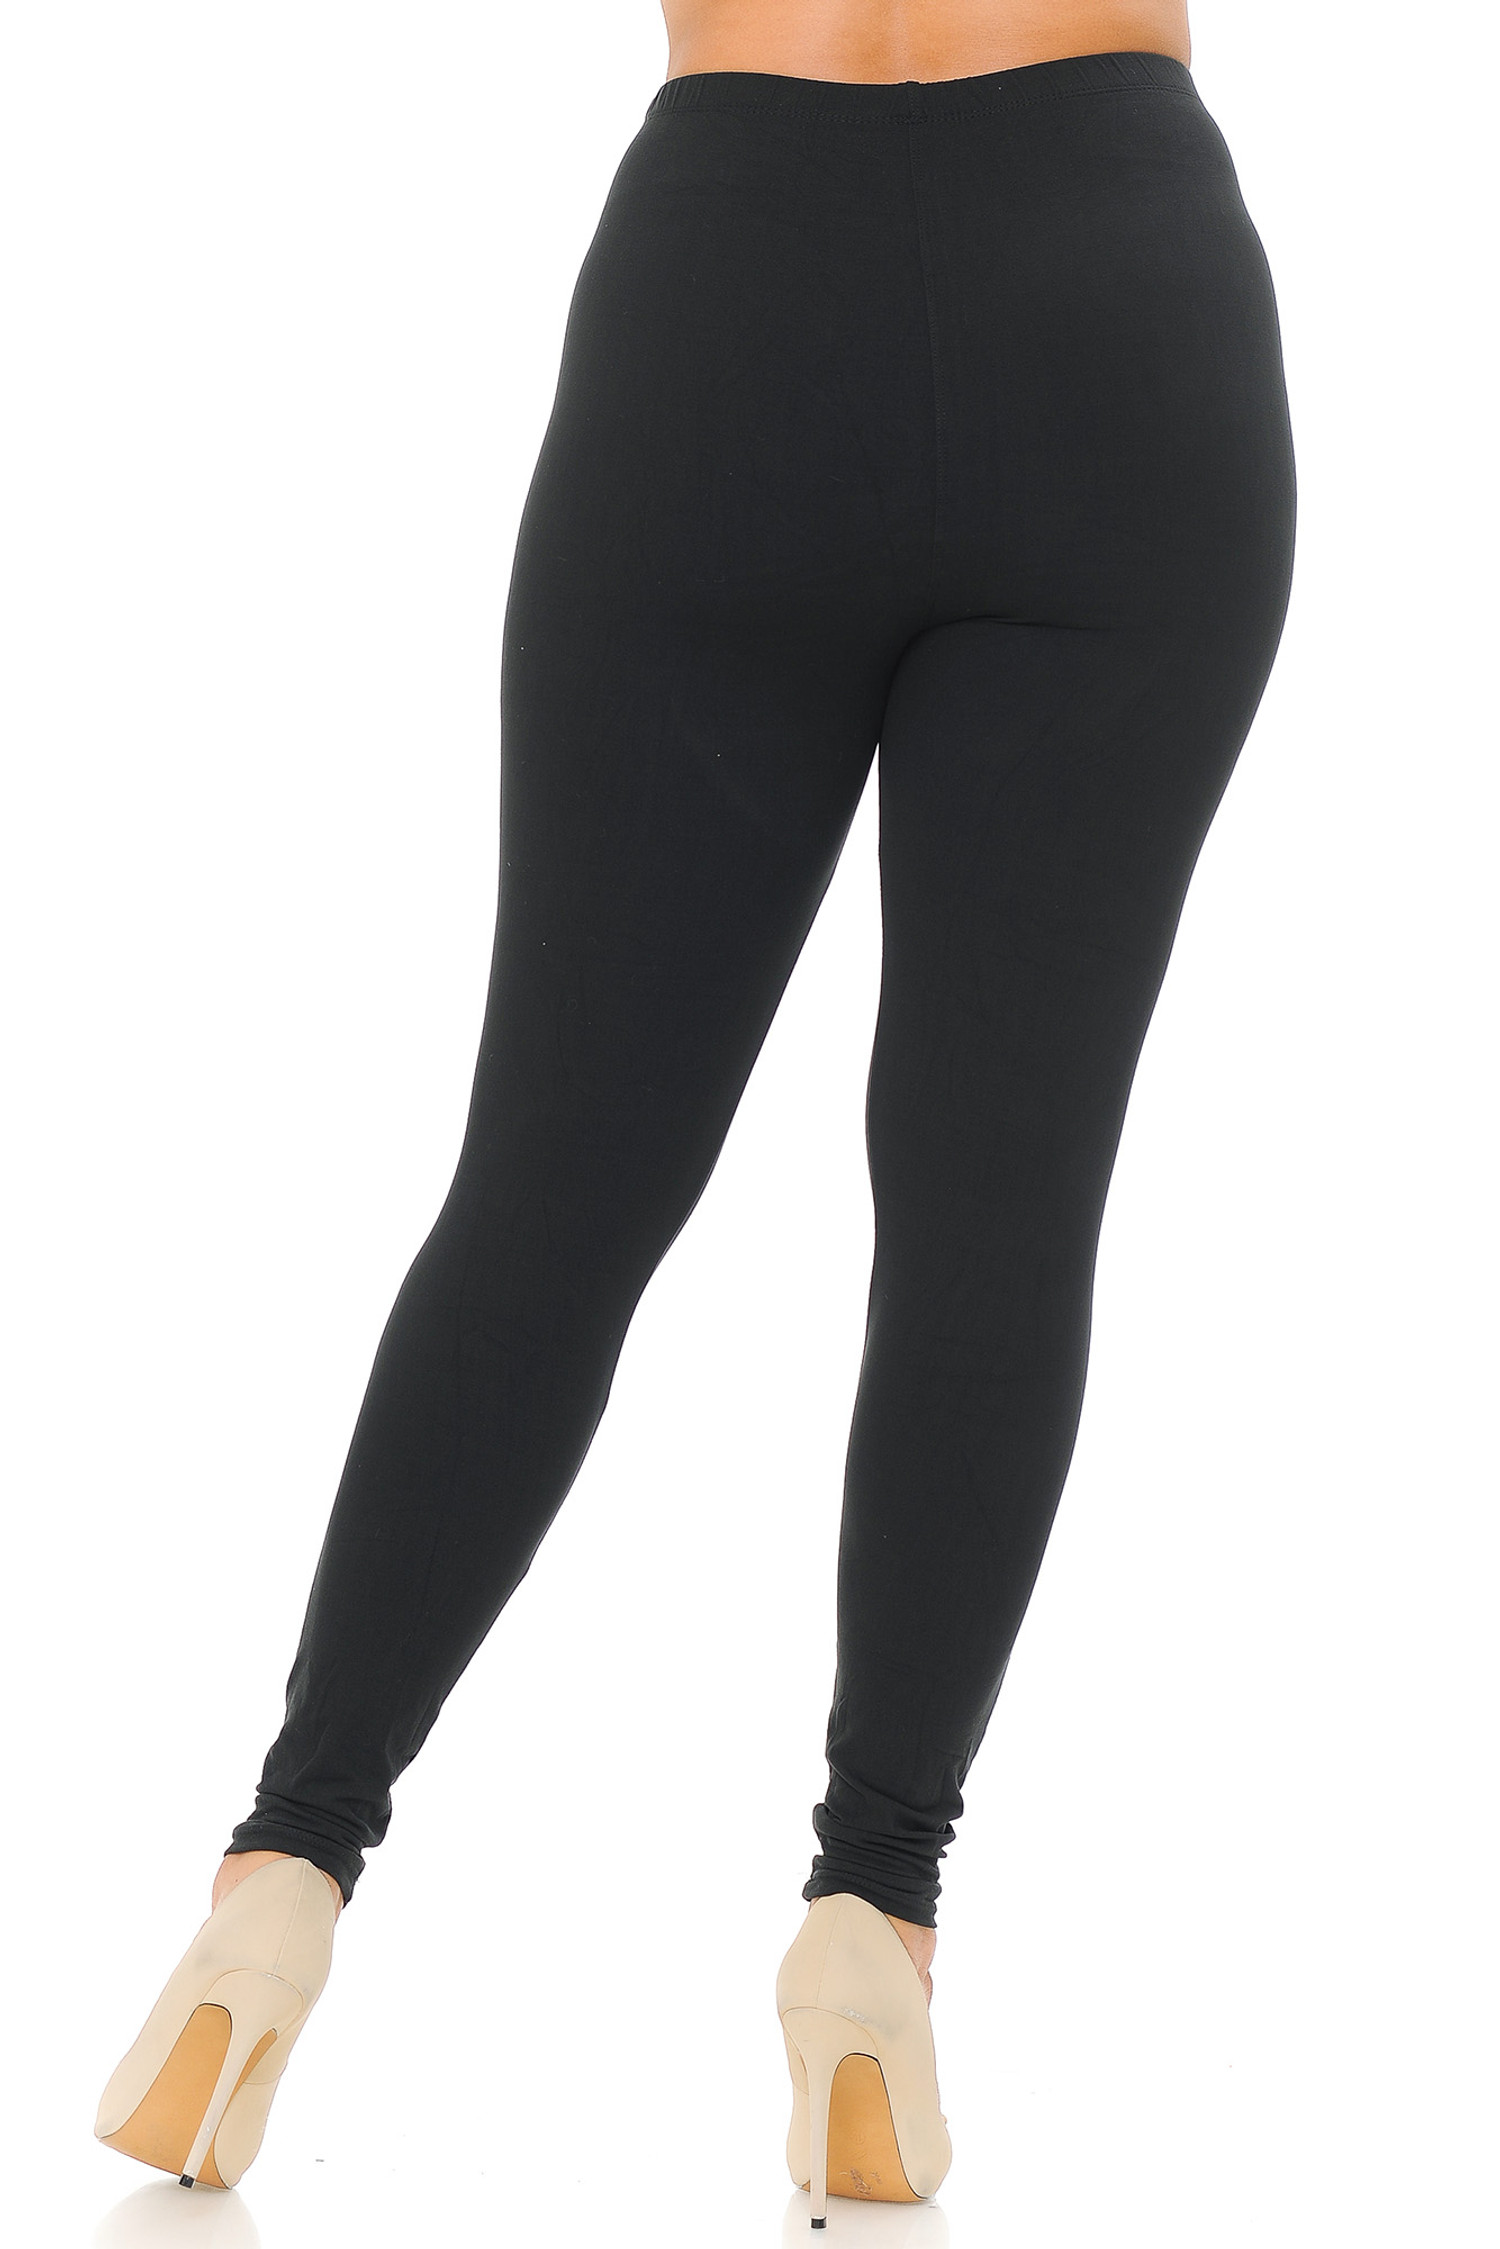 Brushed Basic Solid Extra Plus Size Leggings - 3X-5X - EEVEE